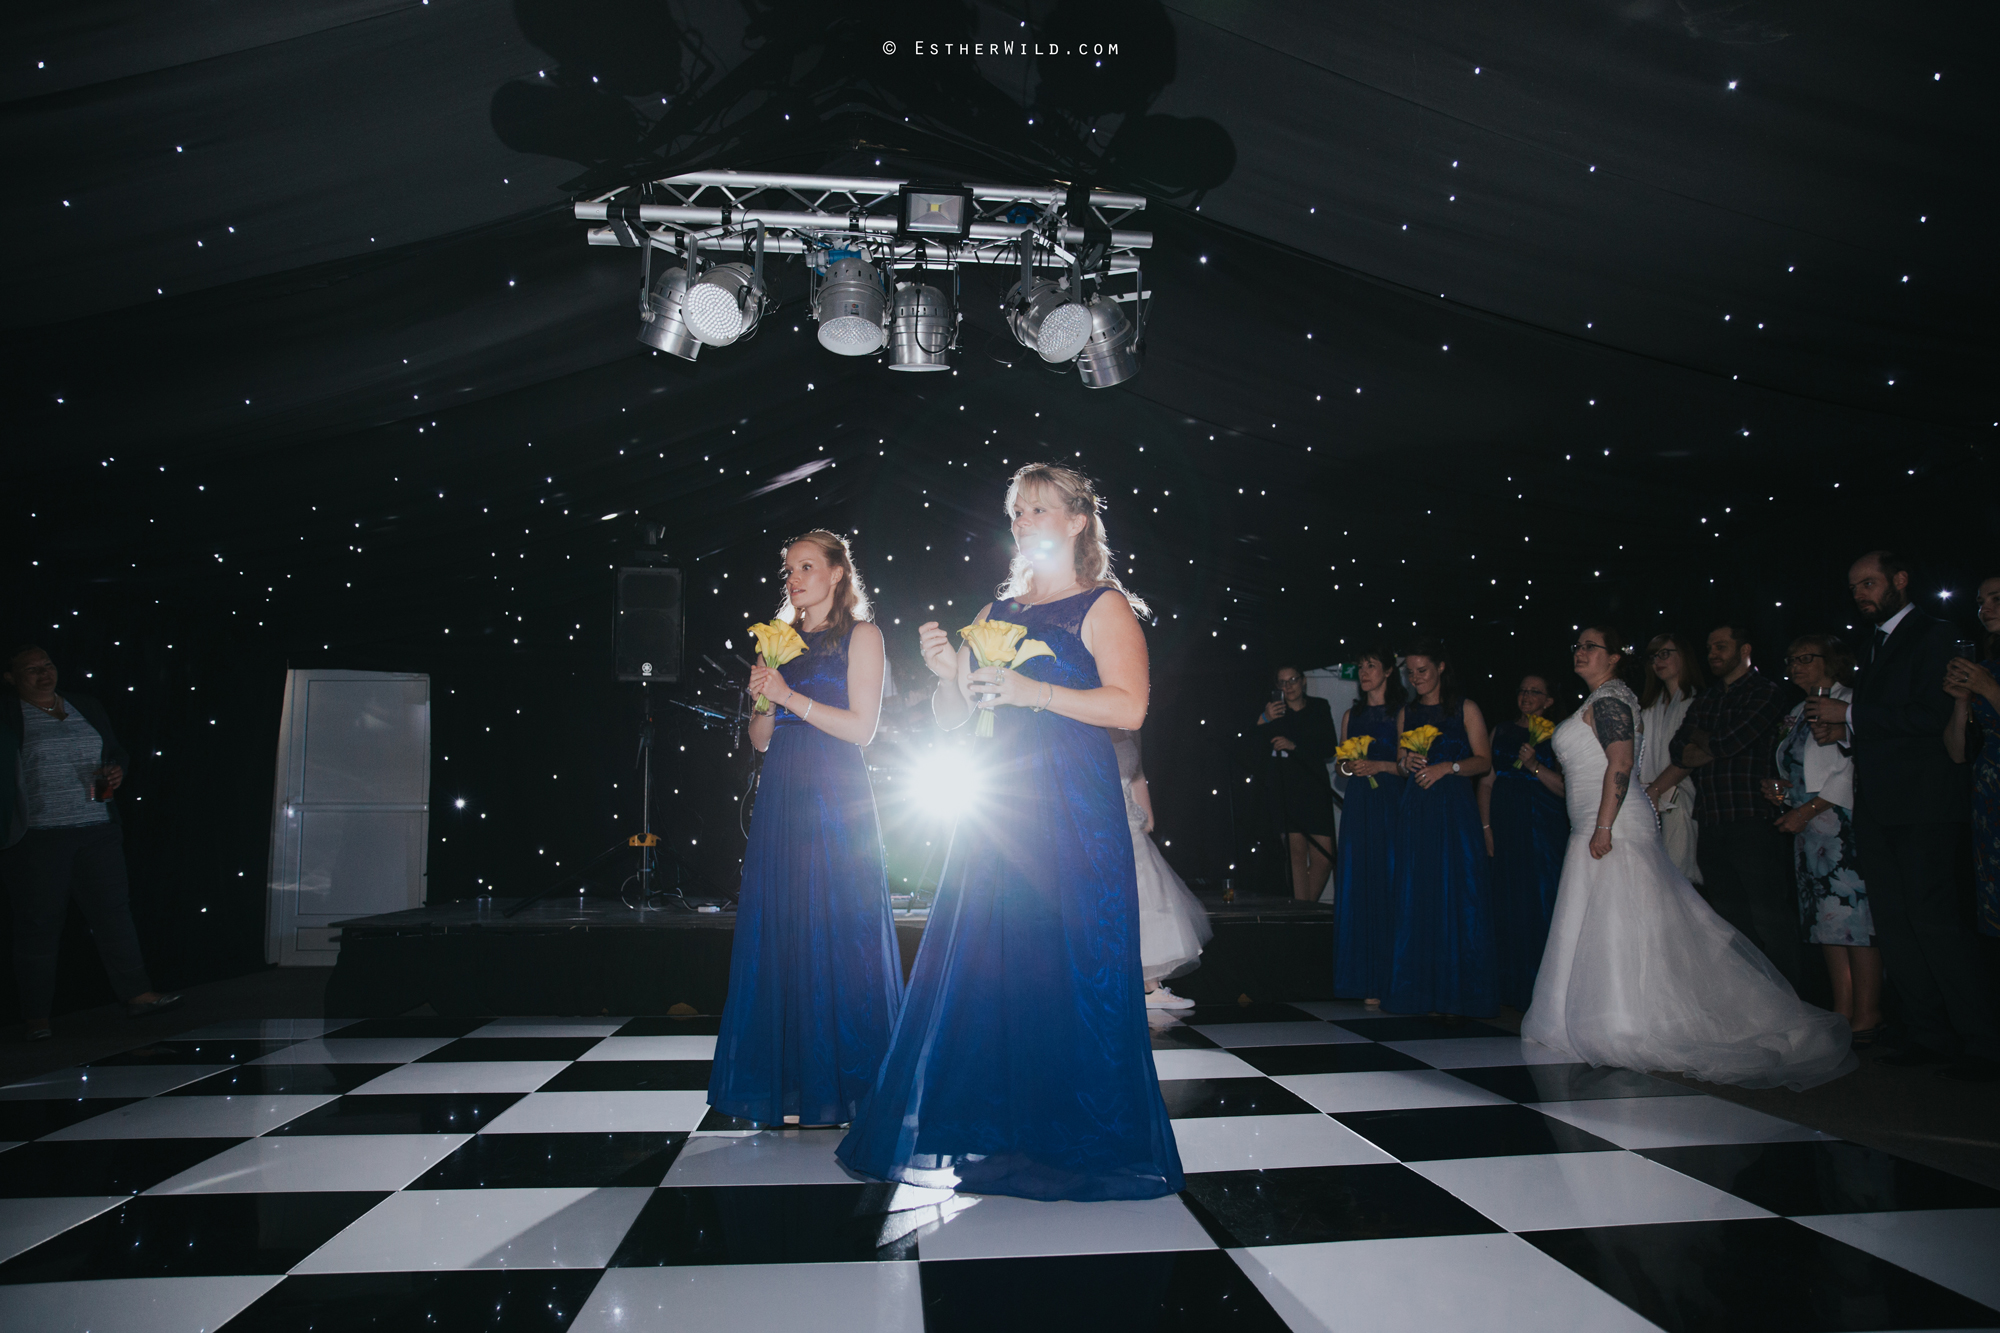 Old_Hall_Ely_Wedding_Esther_Wild_Photographer_IMG_2928.jpg